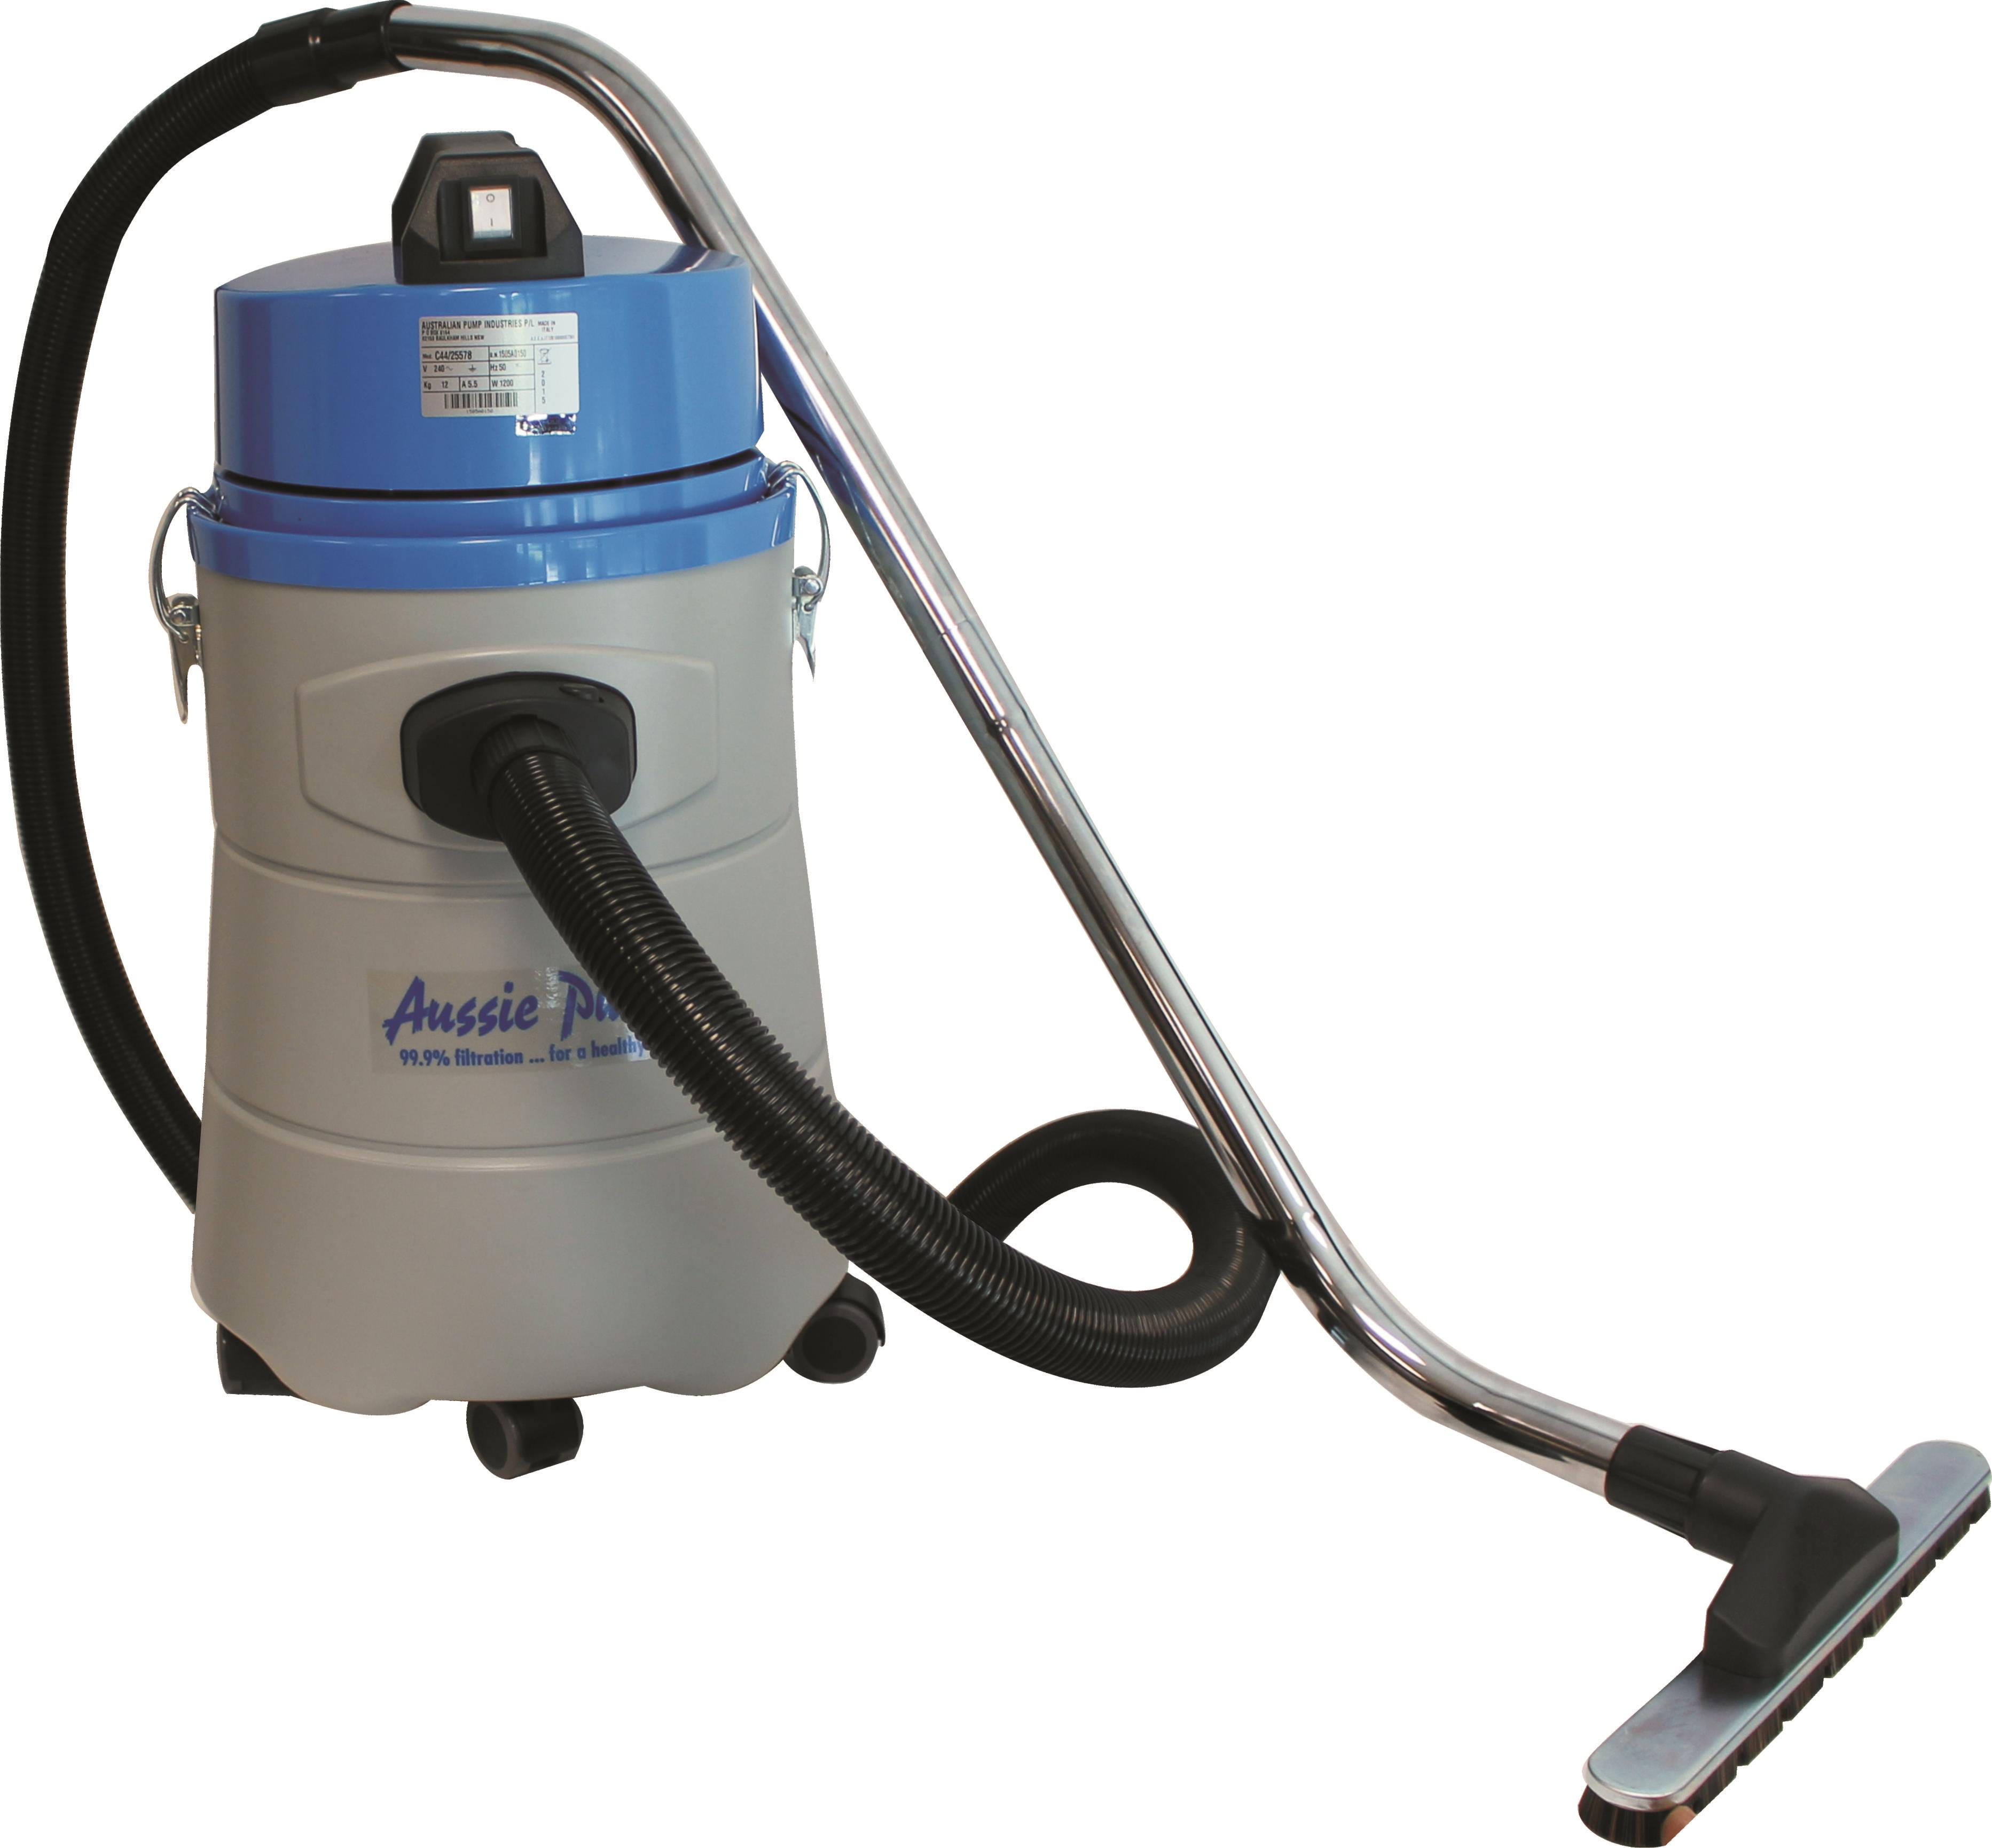 Aussie pumps vc44 wet dry commercial vacuum cleaner for Best vacuum for cement floors